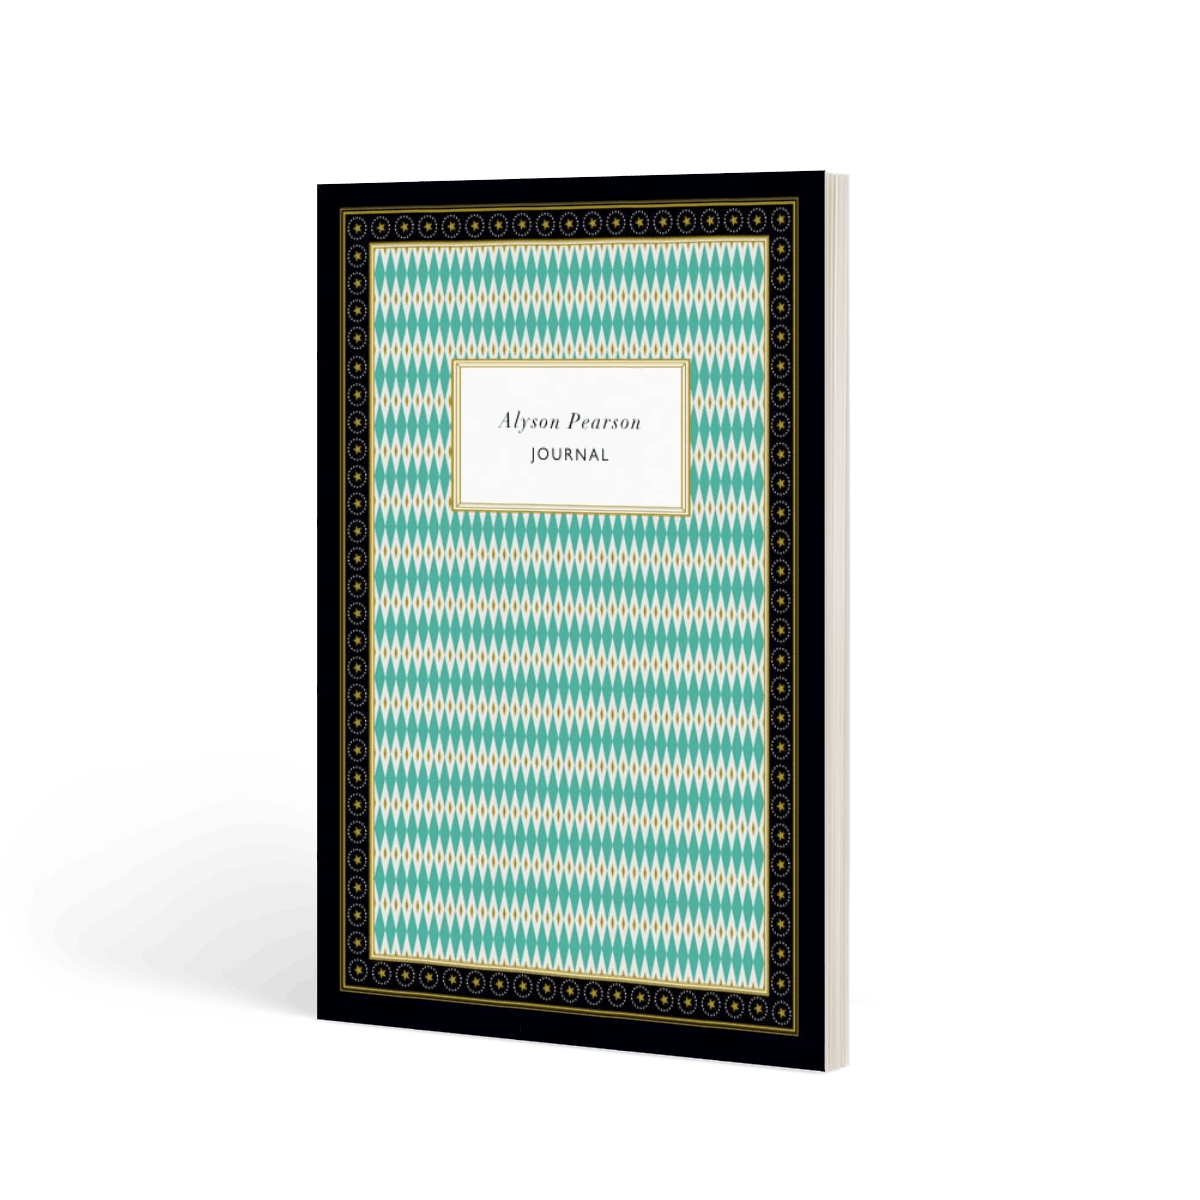 Https%3a%2f%2fwww.papier.com%2fproduct image%2f13567%2f6%2fdeco diamond green 3478 front 1569442696.png?ixlib=rb 1.1